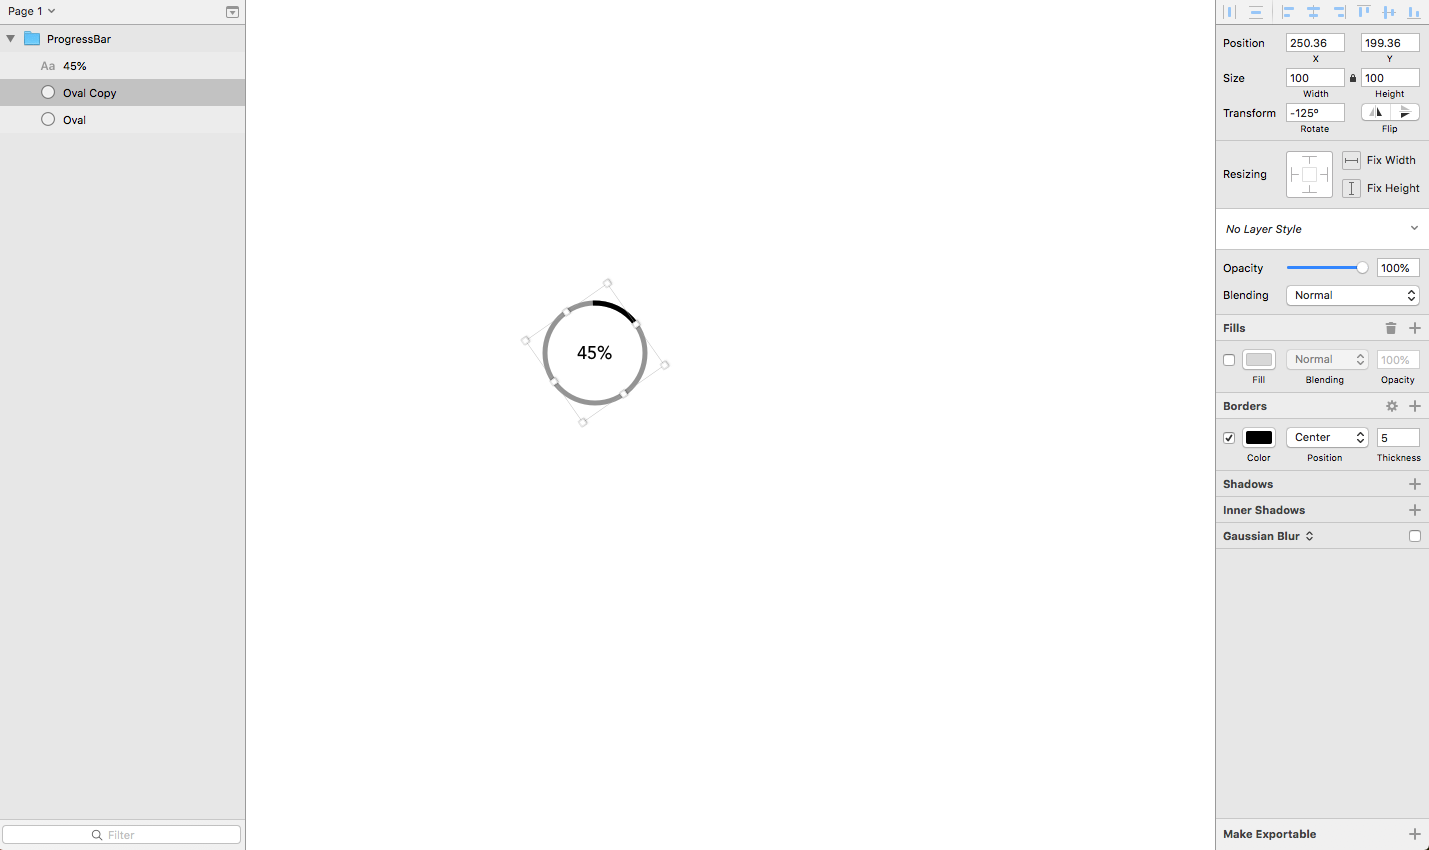 Creating Animated Radial Progress Bars with SVG, CSS and VueJS